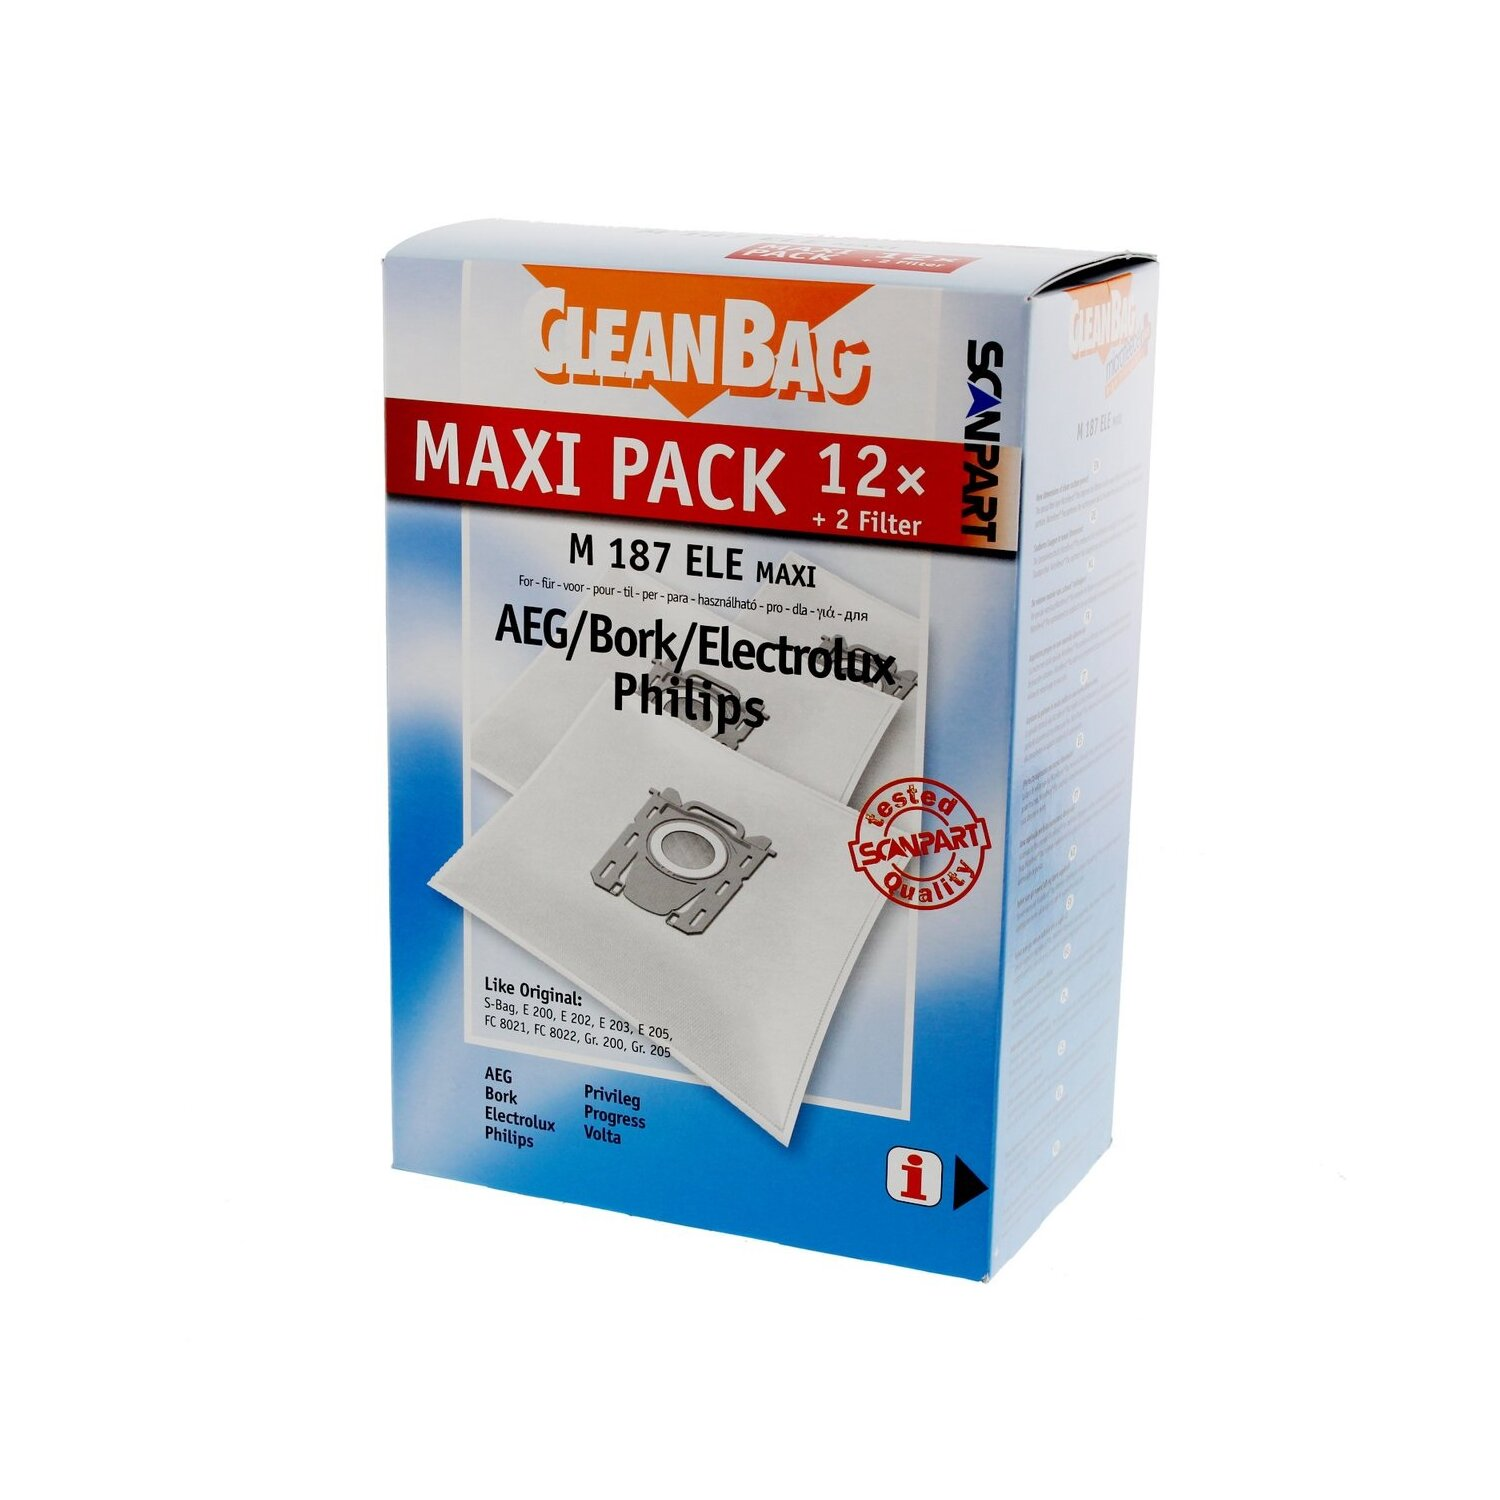 Worki SCANPART M187 ELE MAXI CLEANBAG